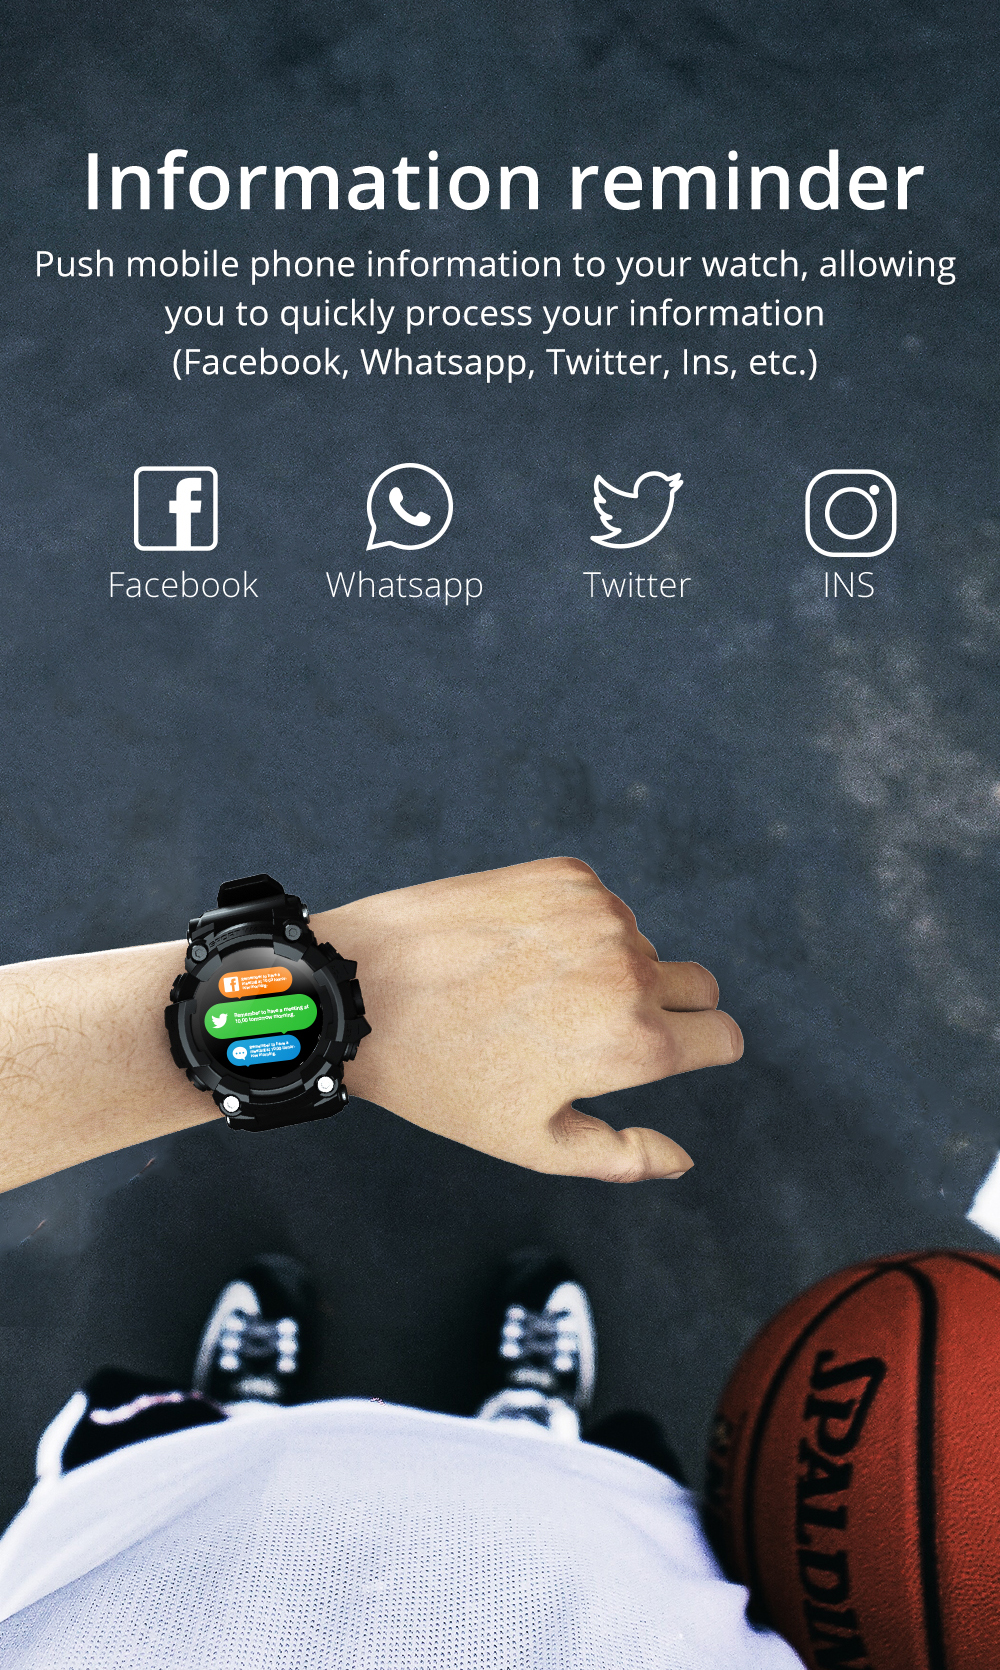 H474045e2c75c437781019b5babece1bd4 LOKMAT ATTACK Full Touch Screen Fitness Tracker Smart Watch Men Heart Rate Monitor Blood Pressure Smartwatch For Android iOS